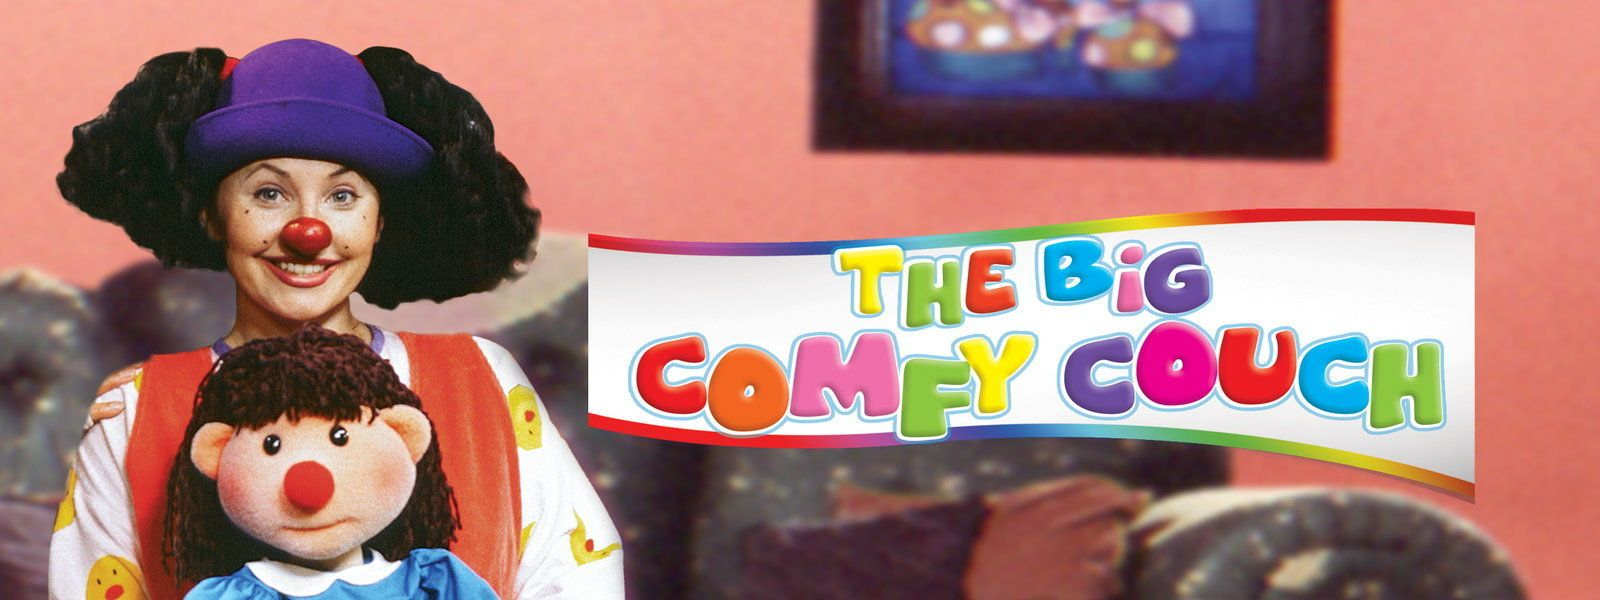 Hereu0027s What Loonette The Clown From U0027The Big Comfy Couchu0027 Looks Like Now |  HuffPost